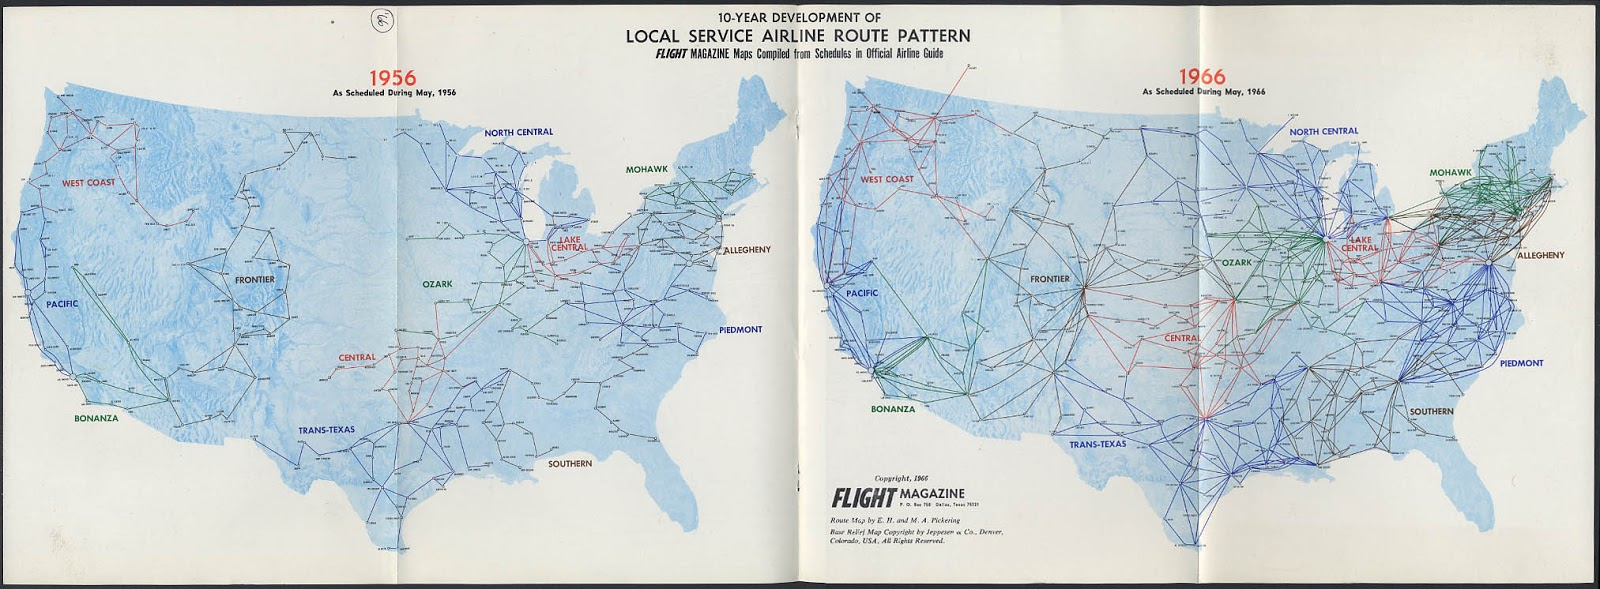 10-Year Development of Local Service Airline Route Pattern in the U.S.